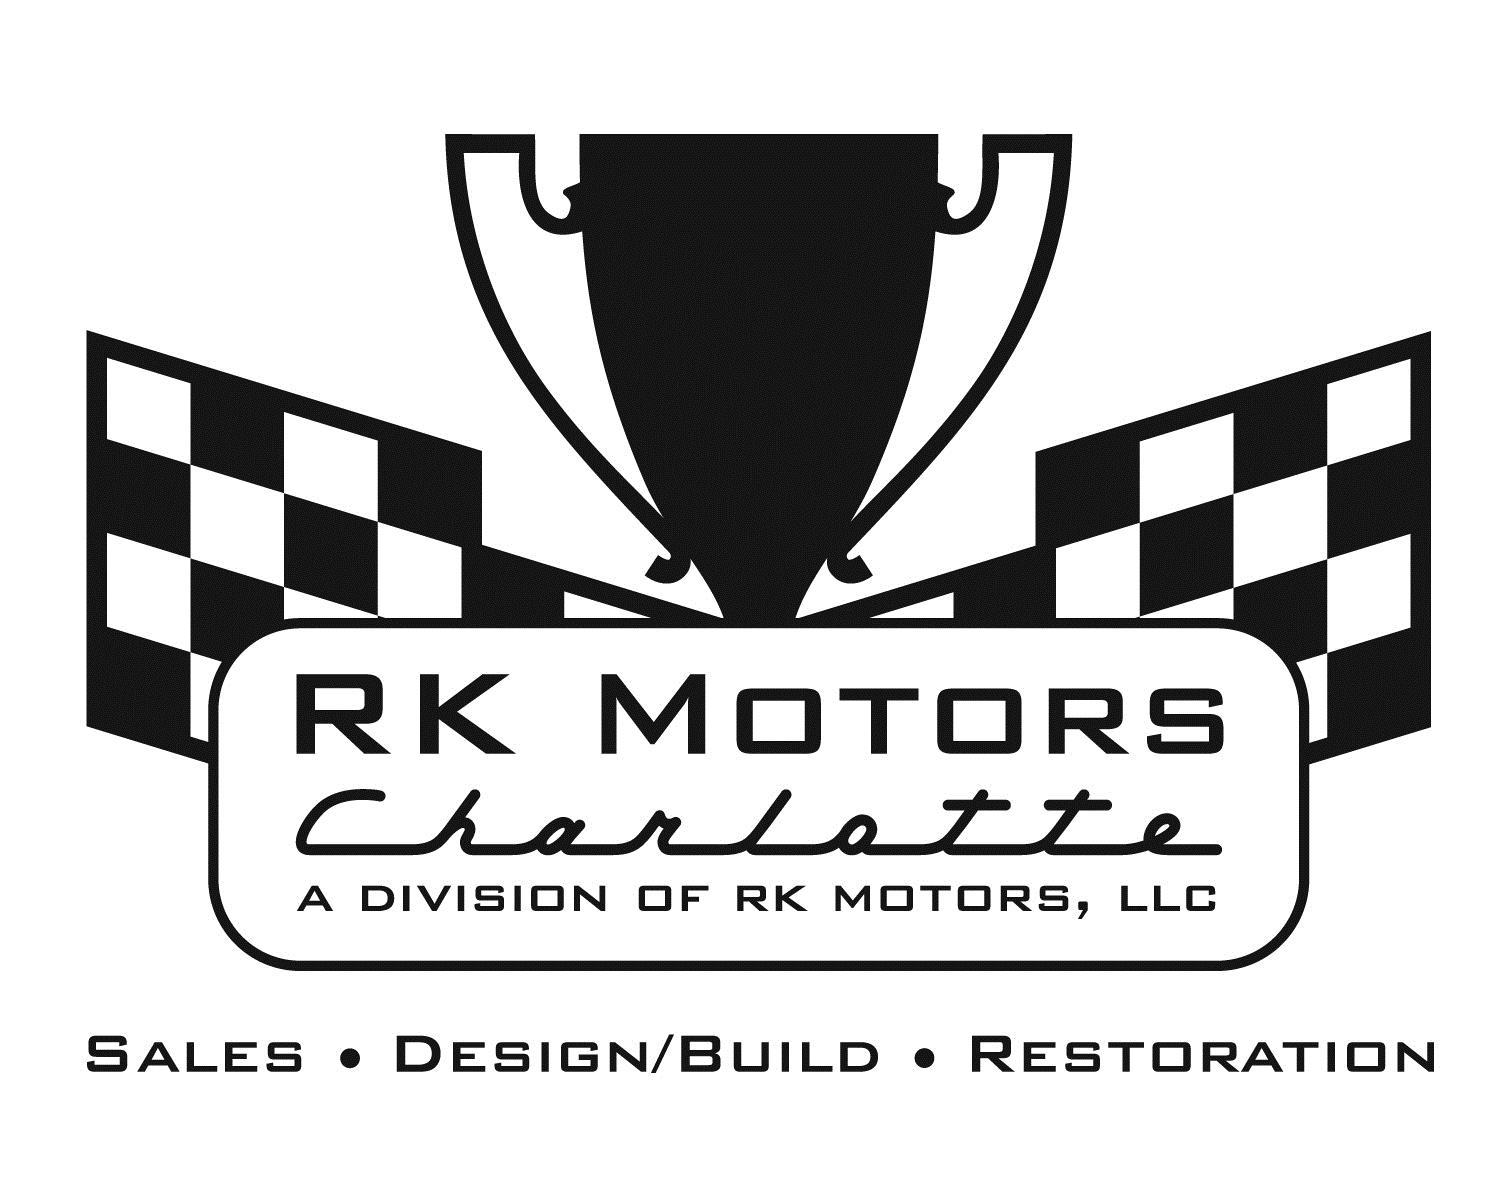 Rk Motors Charlotte Spearheads Restoration Of Classic Ford